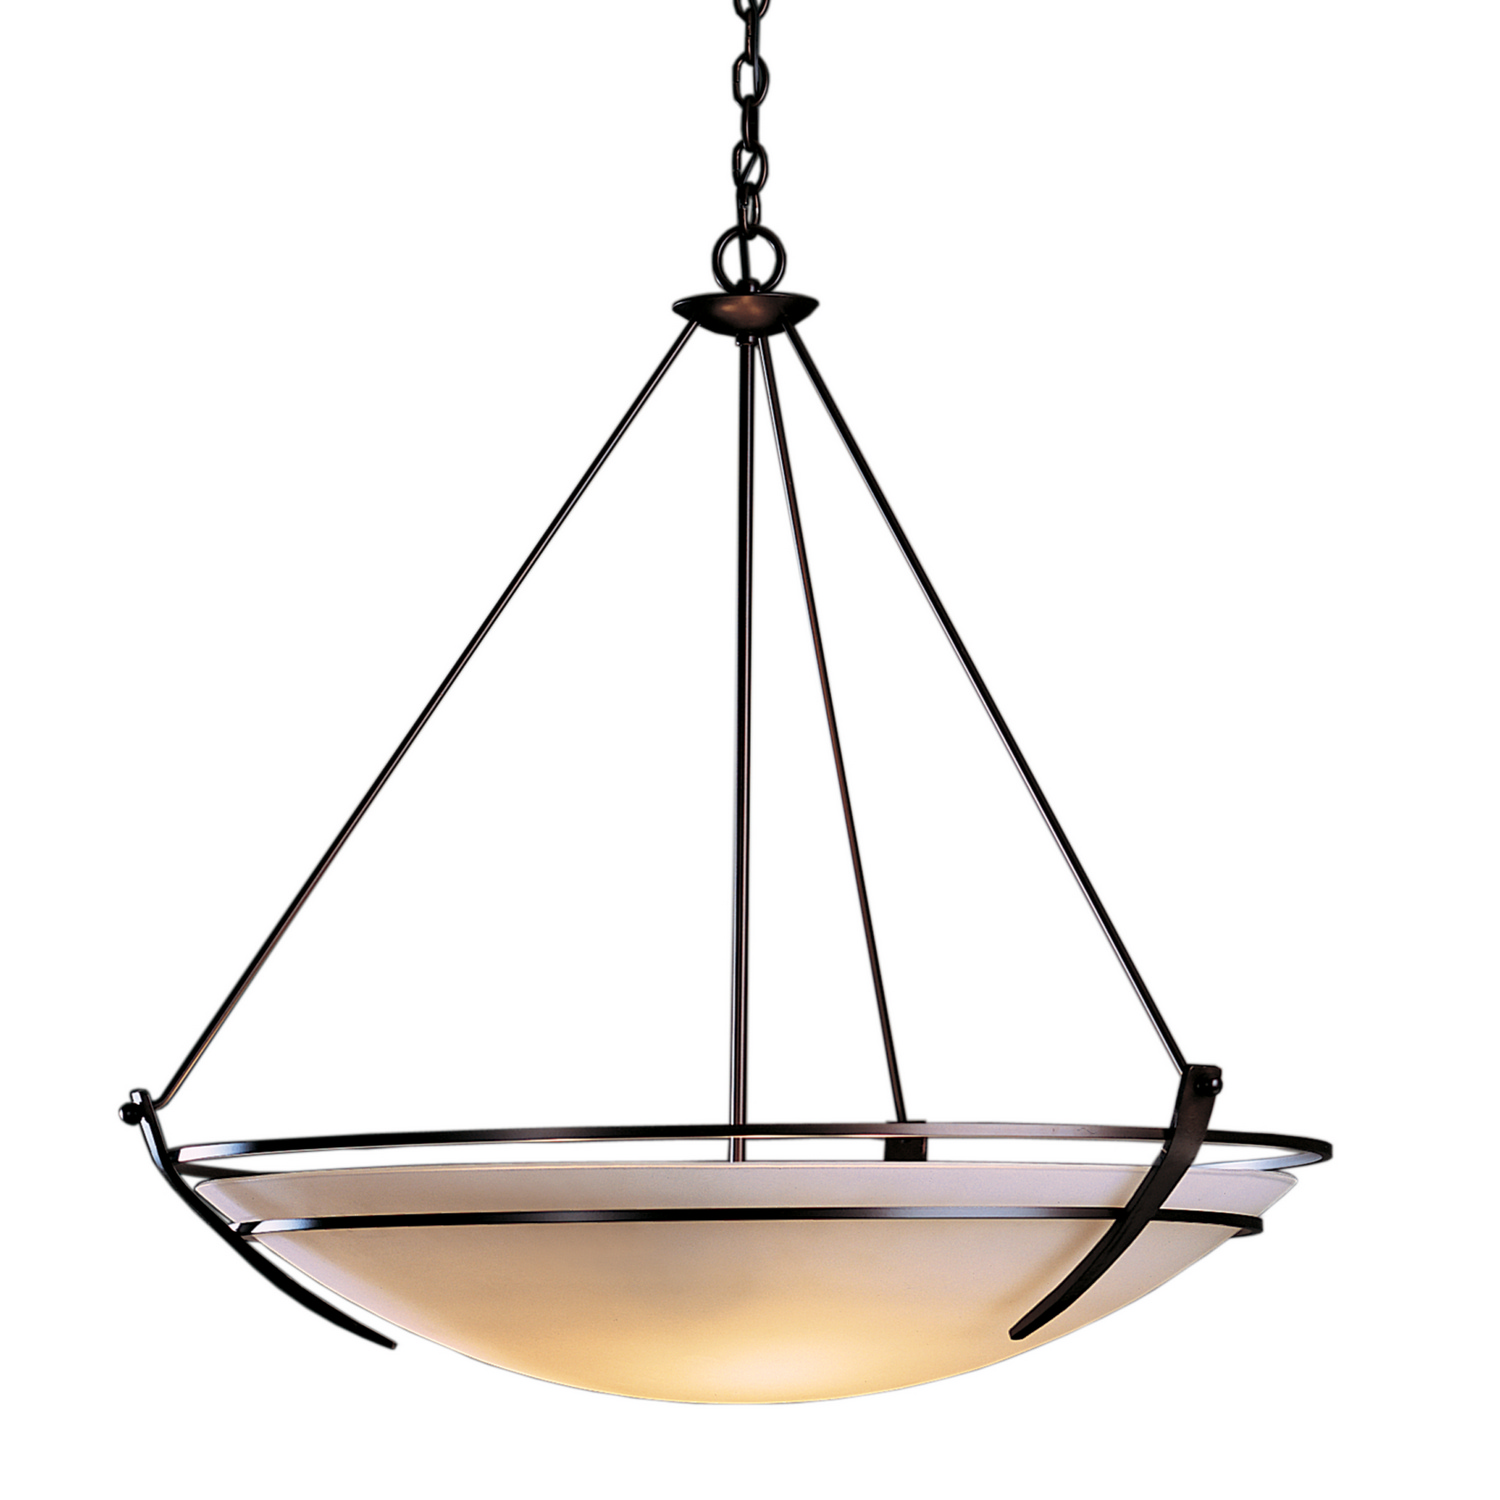 "Hubbardton Forge ""Presidio"" Pendant American Craftsman Style Lighting"